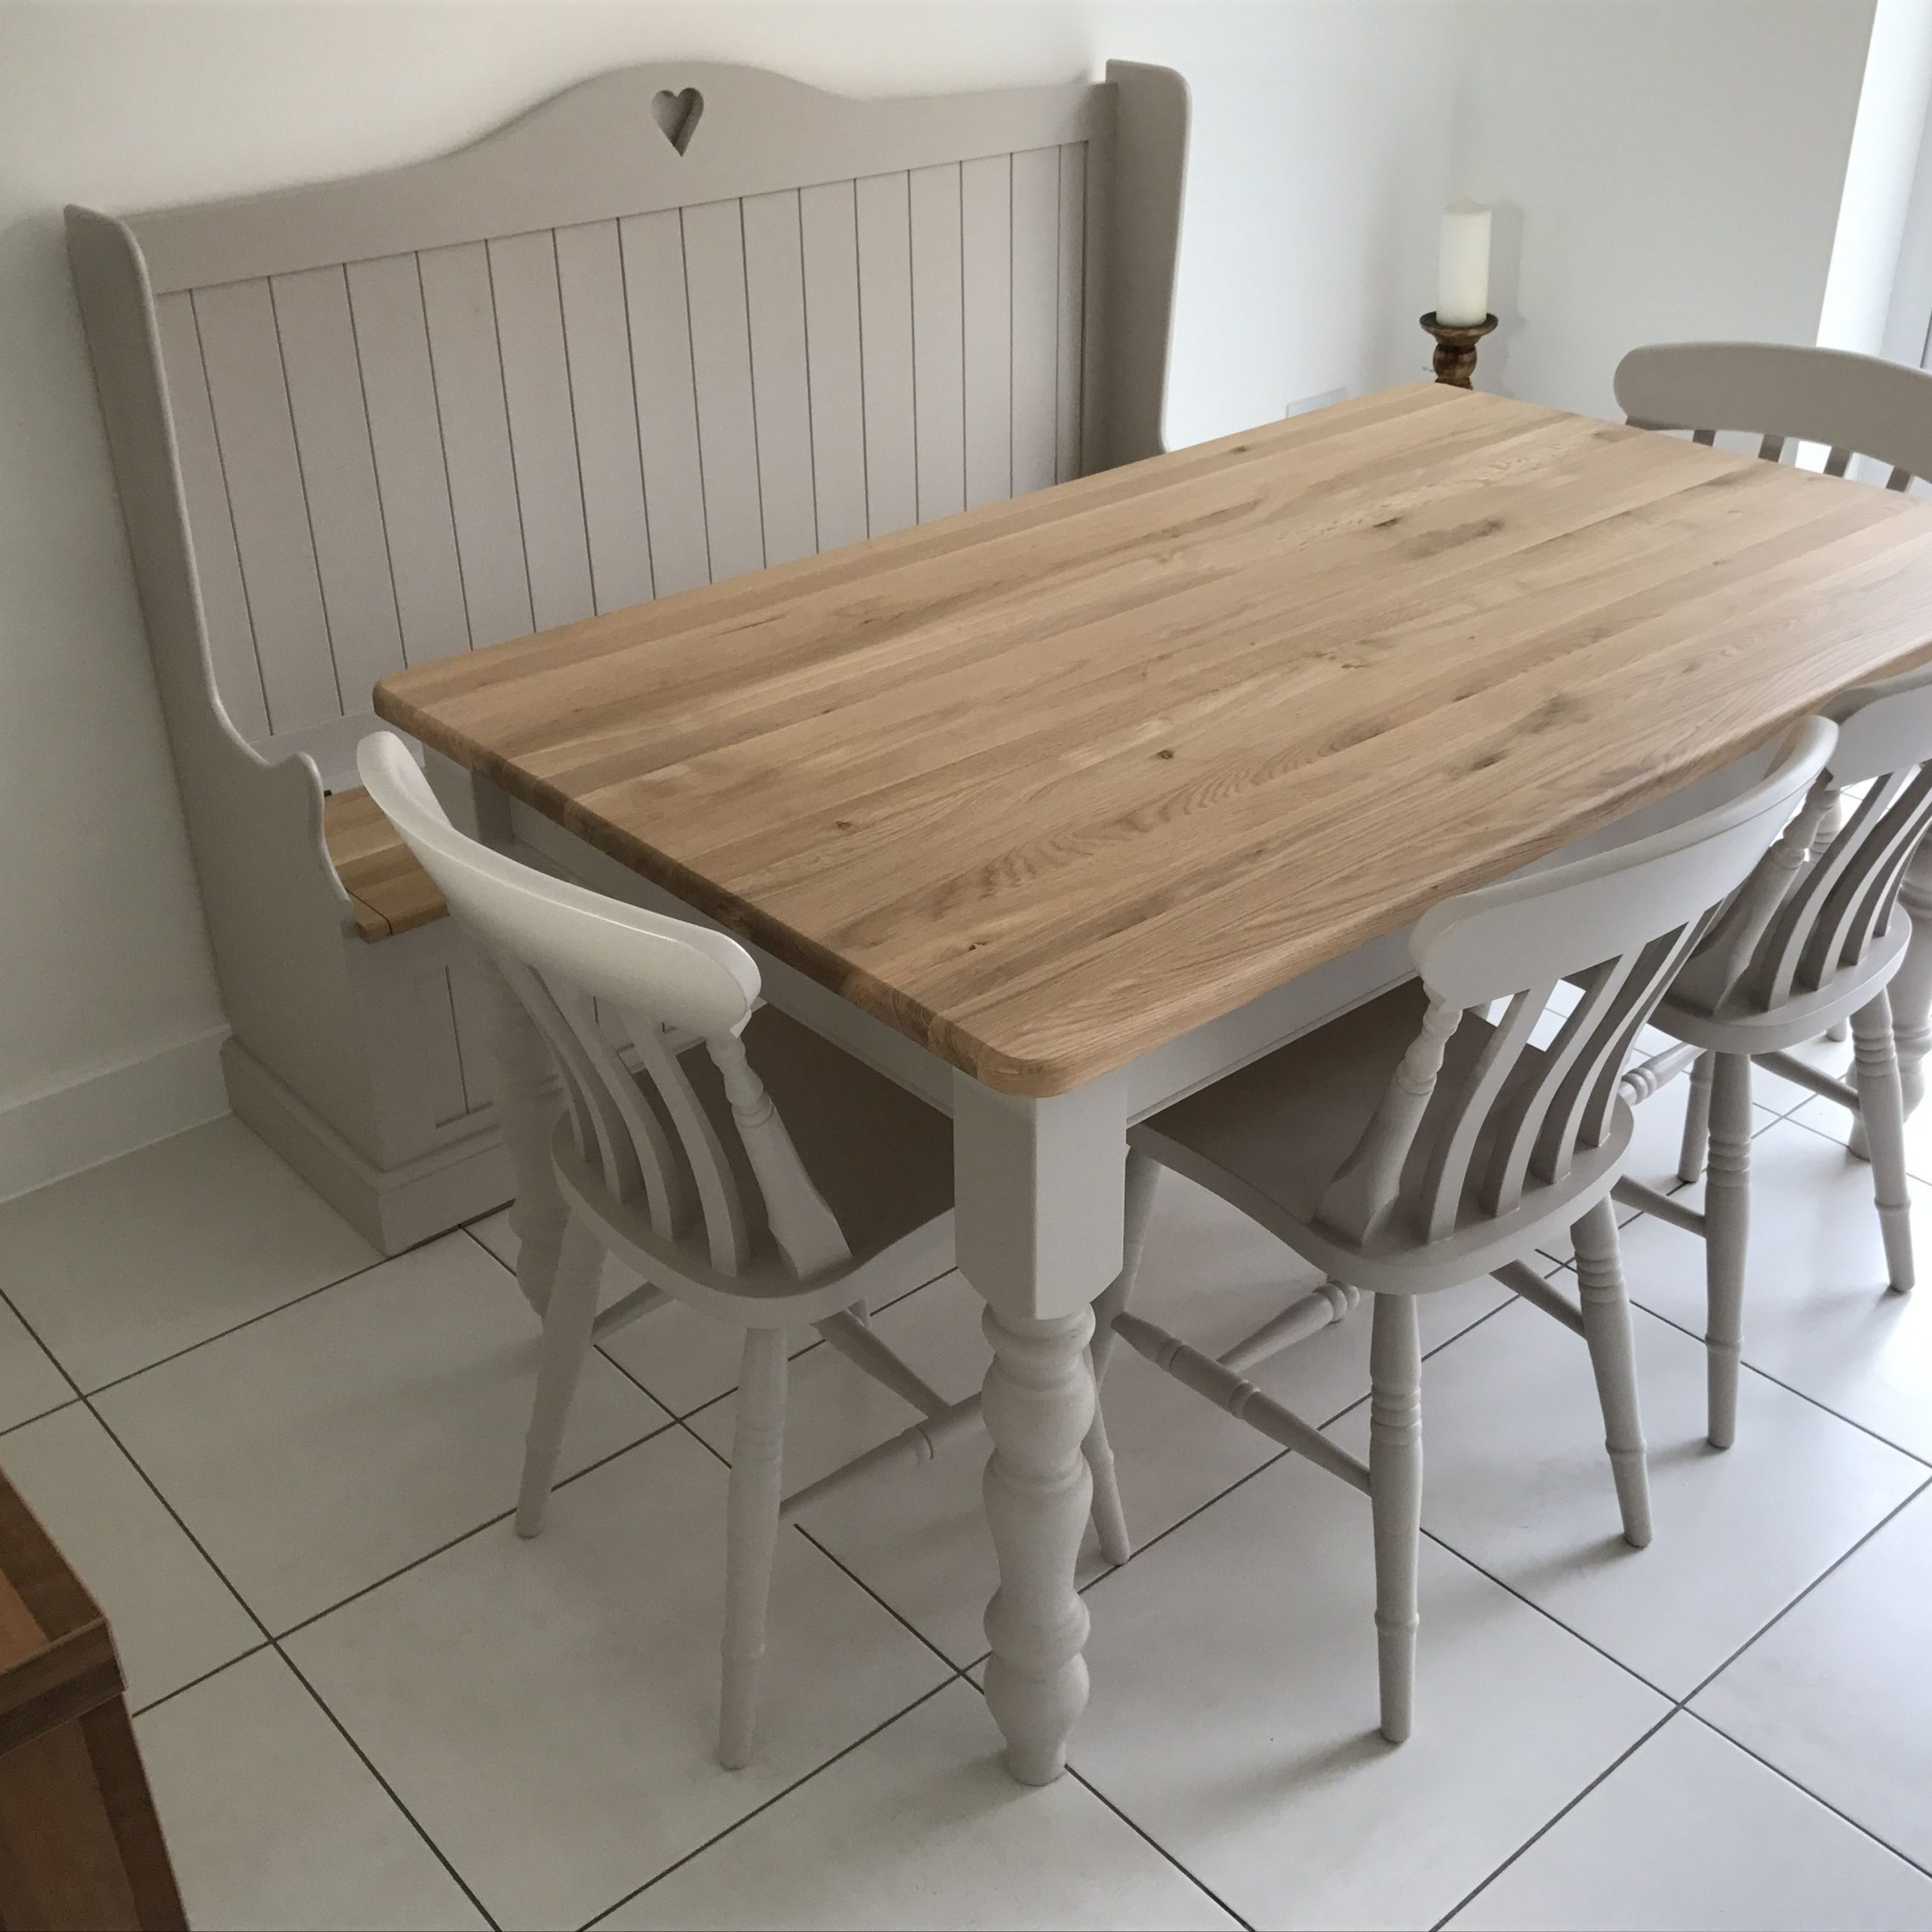 Solid Oak Table Set 5X3Ft With Monks Bench In 2019 | Solid With Regard To Newest Hearst Oak Wood Dining Tables (Image 21 of 25)